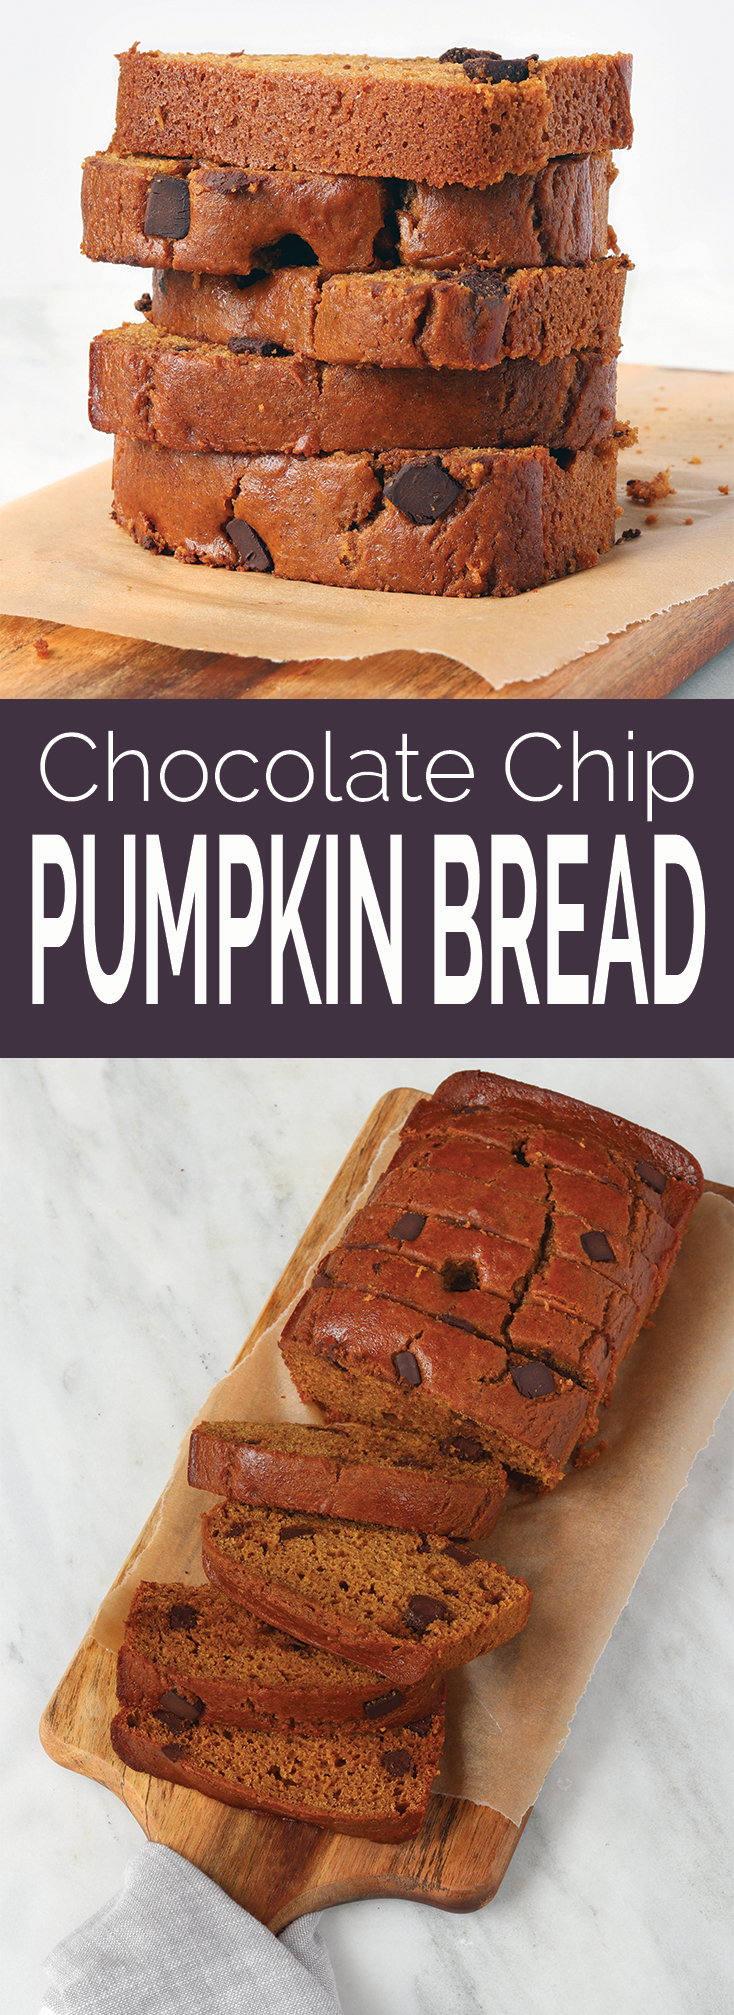 Healthy One-Bowl Chocolate Chip Pumpkin Bread